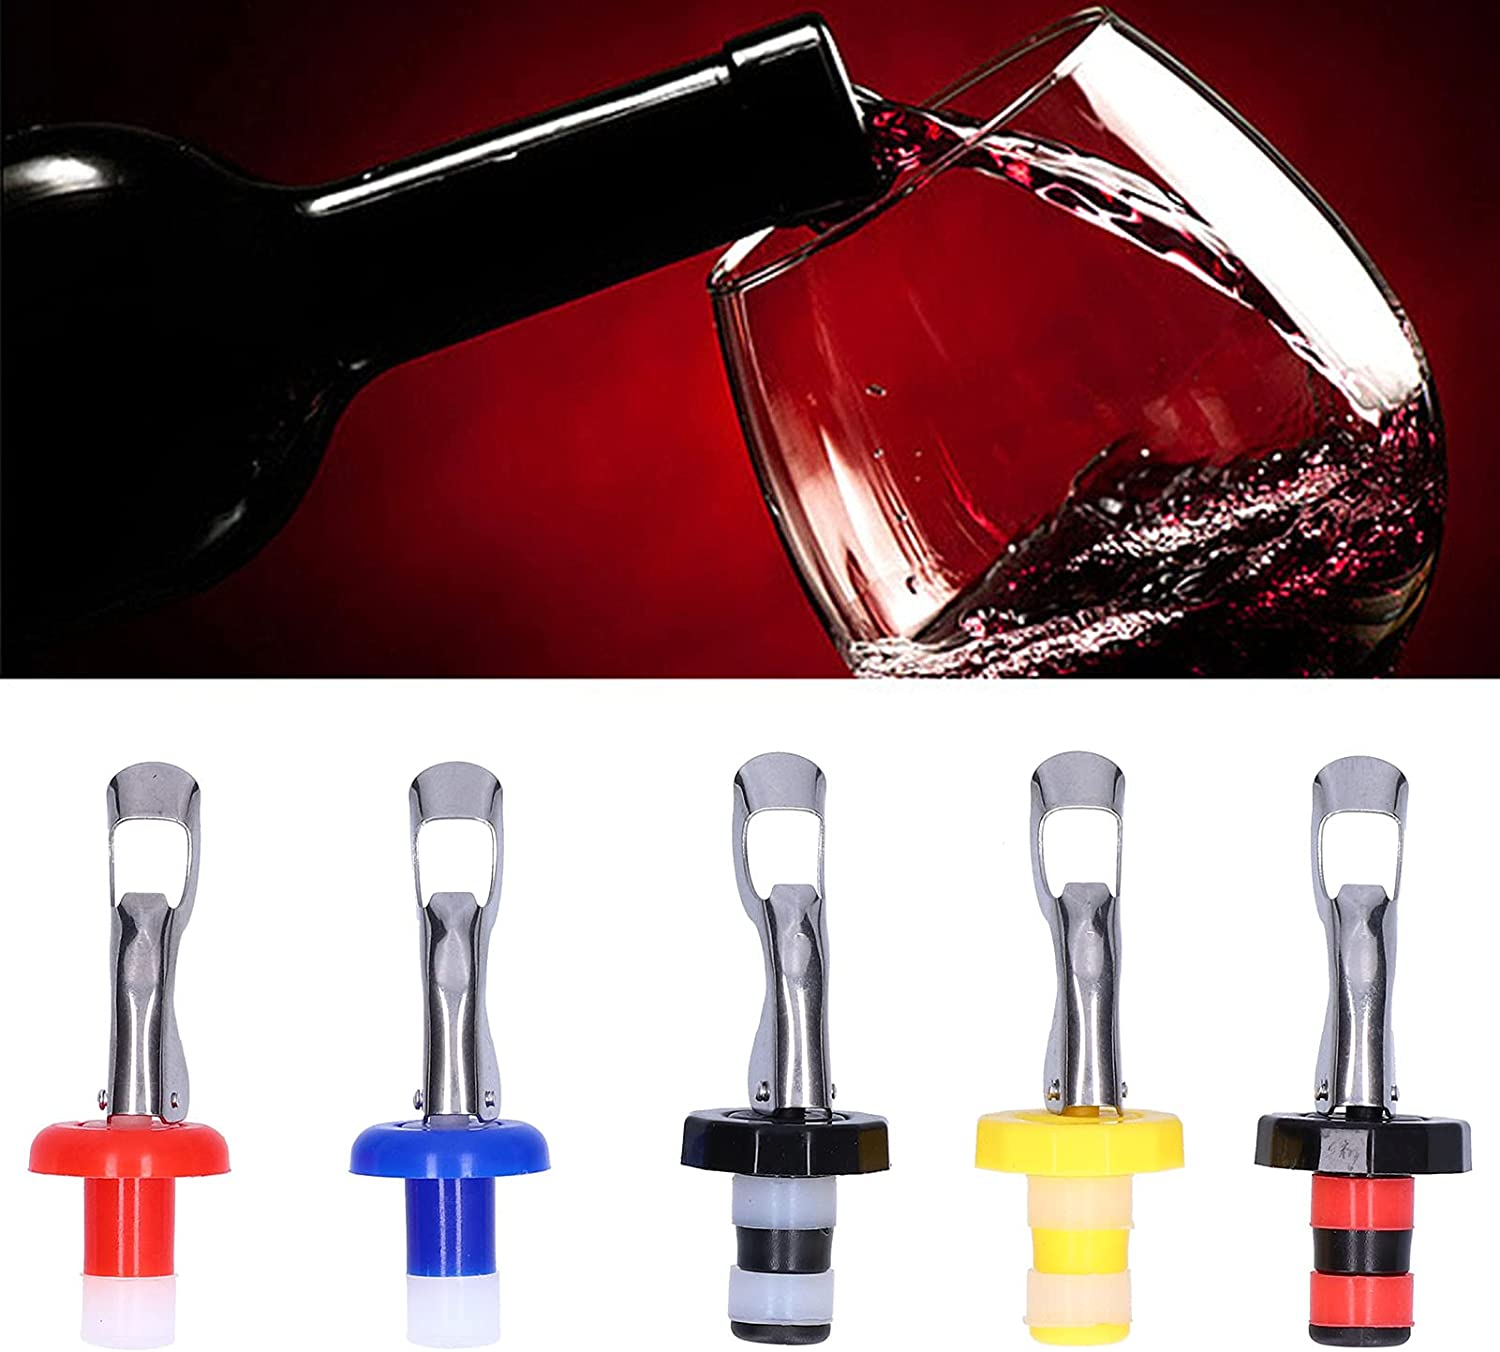 Outstanding Beverage Bottle Cork Wine Plug Portable Sales Weight Light for